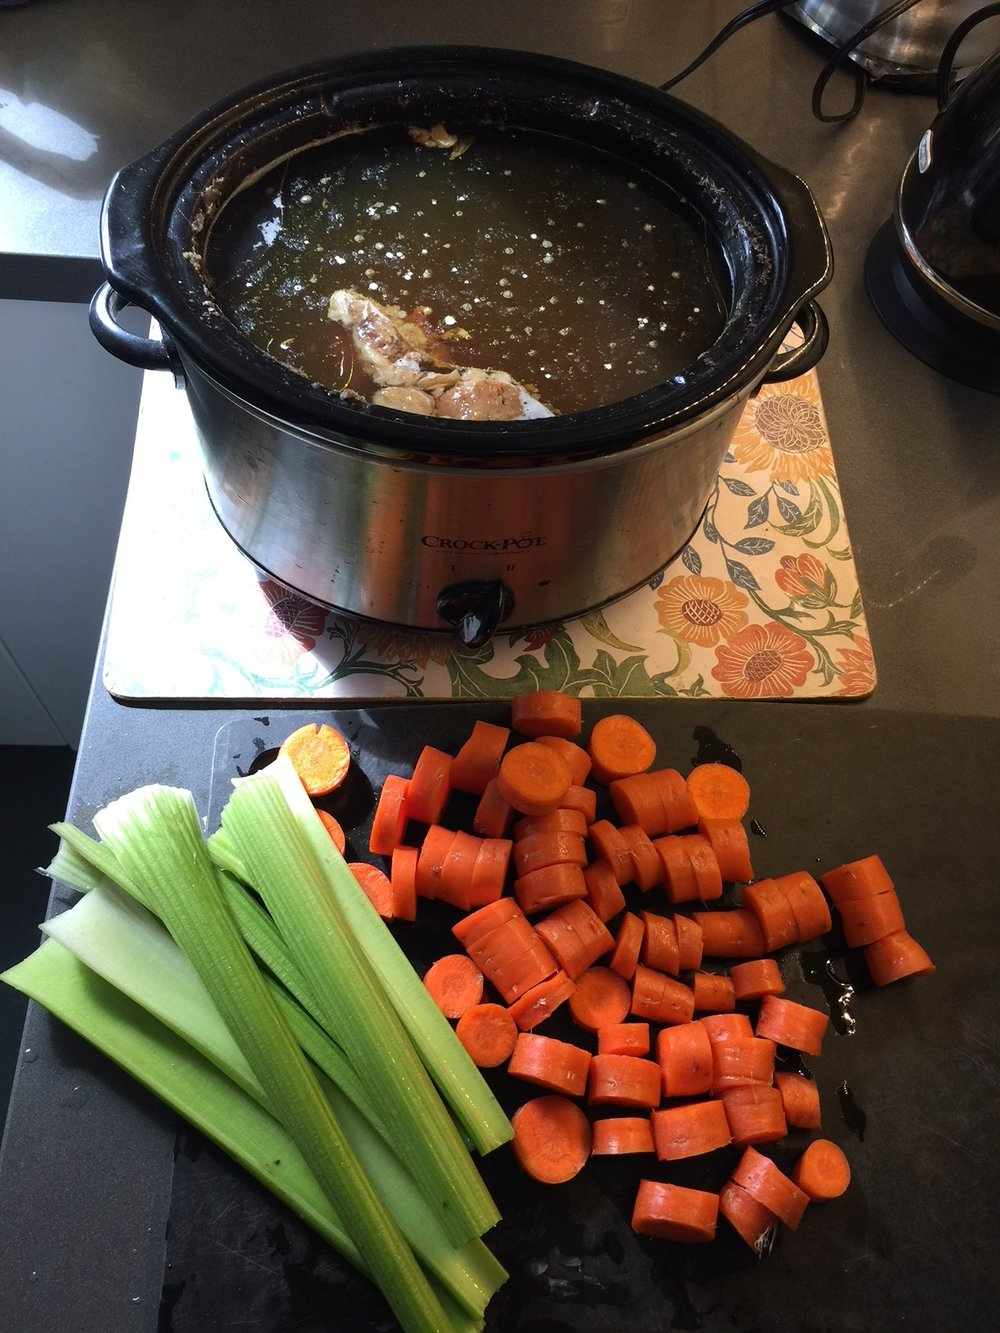 After simmering my bone broth for 48 hours, I strain the broth (keeping the marrow) and then add in some veggies to cook for a few hours. Turning the broth into more of a broth-based soup.